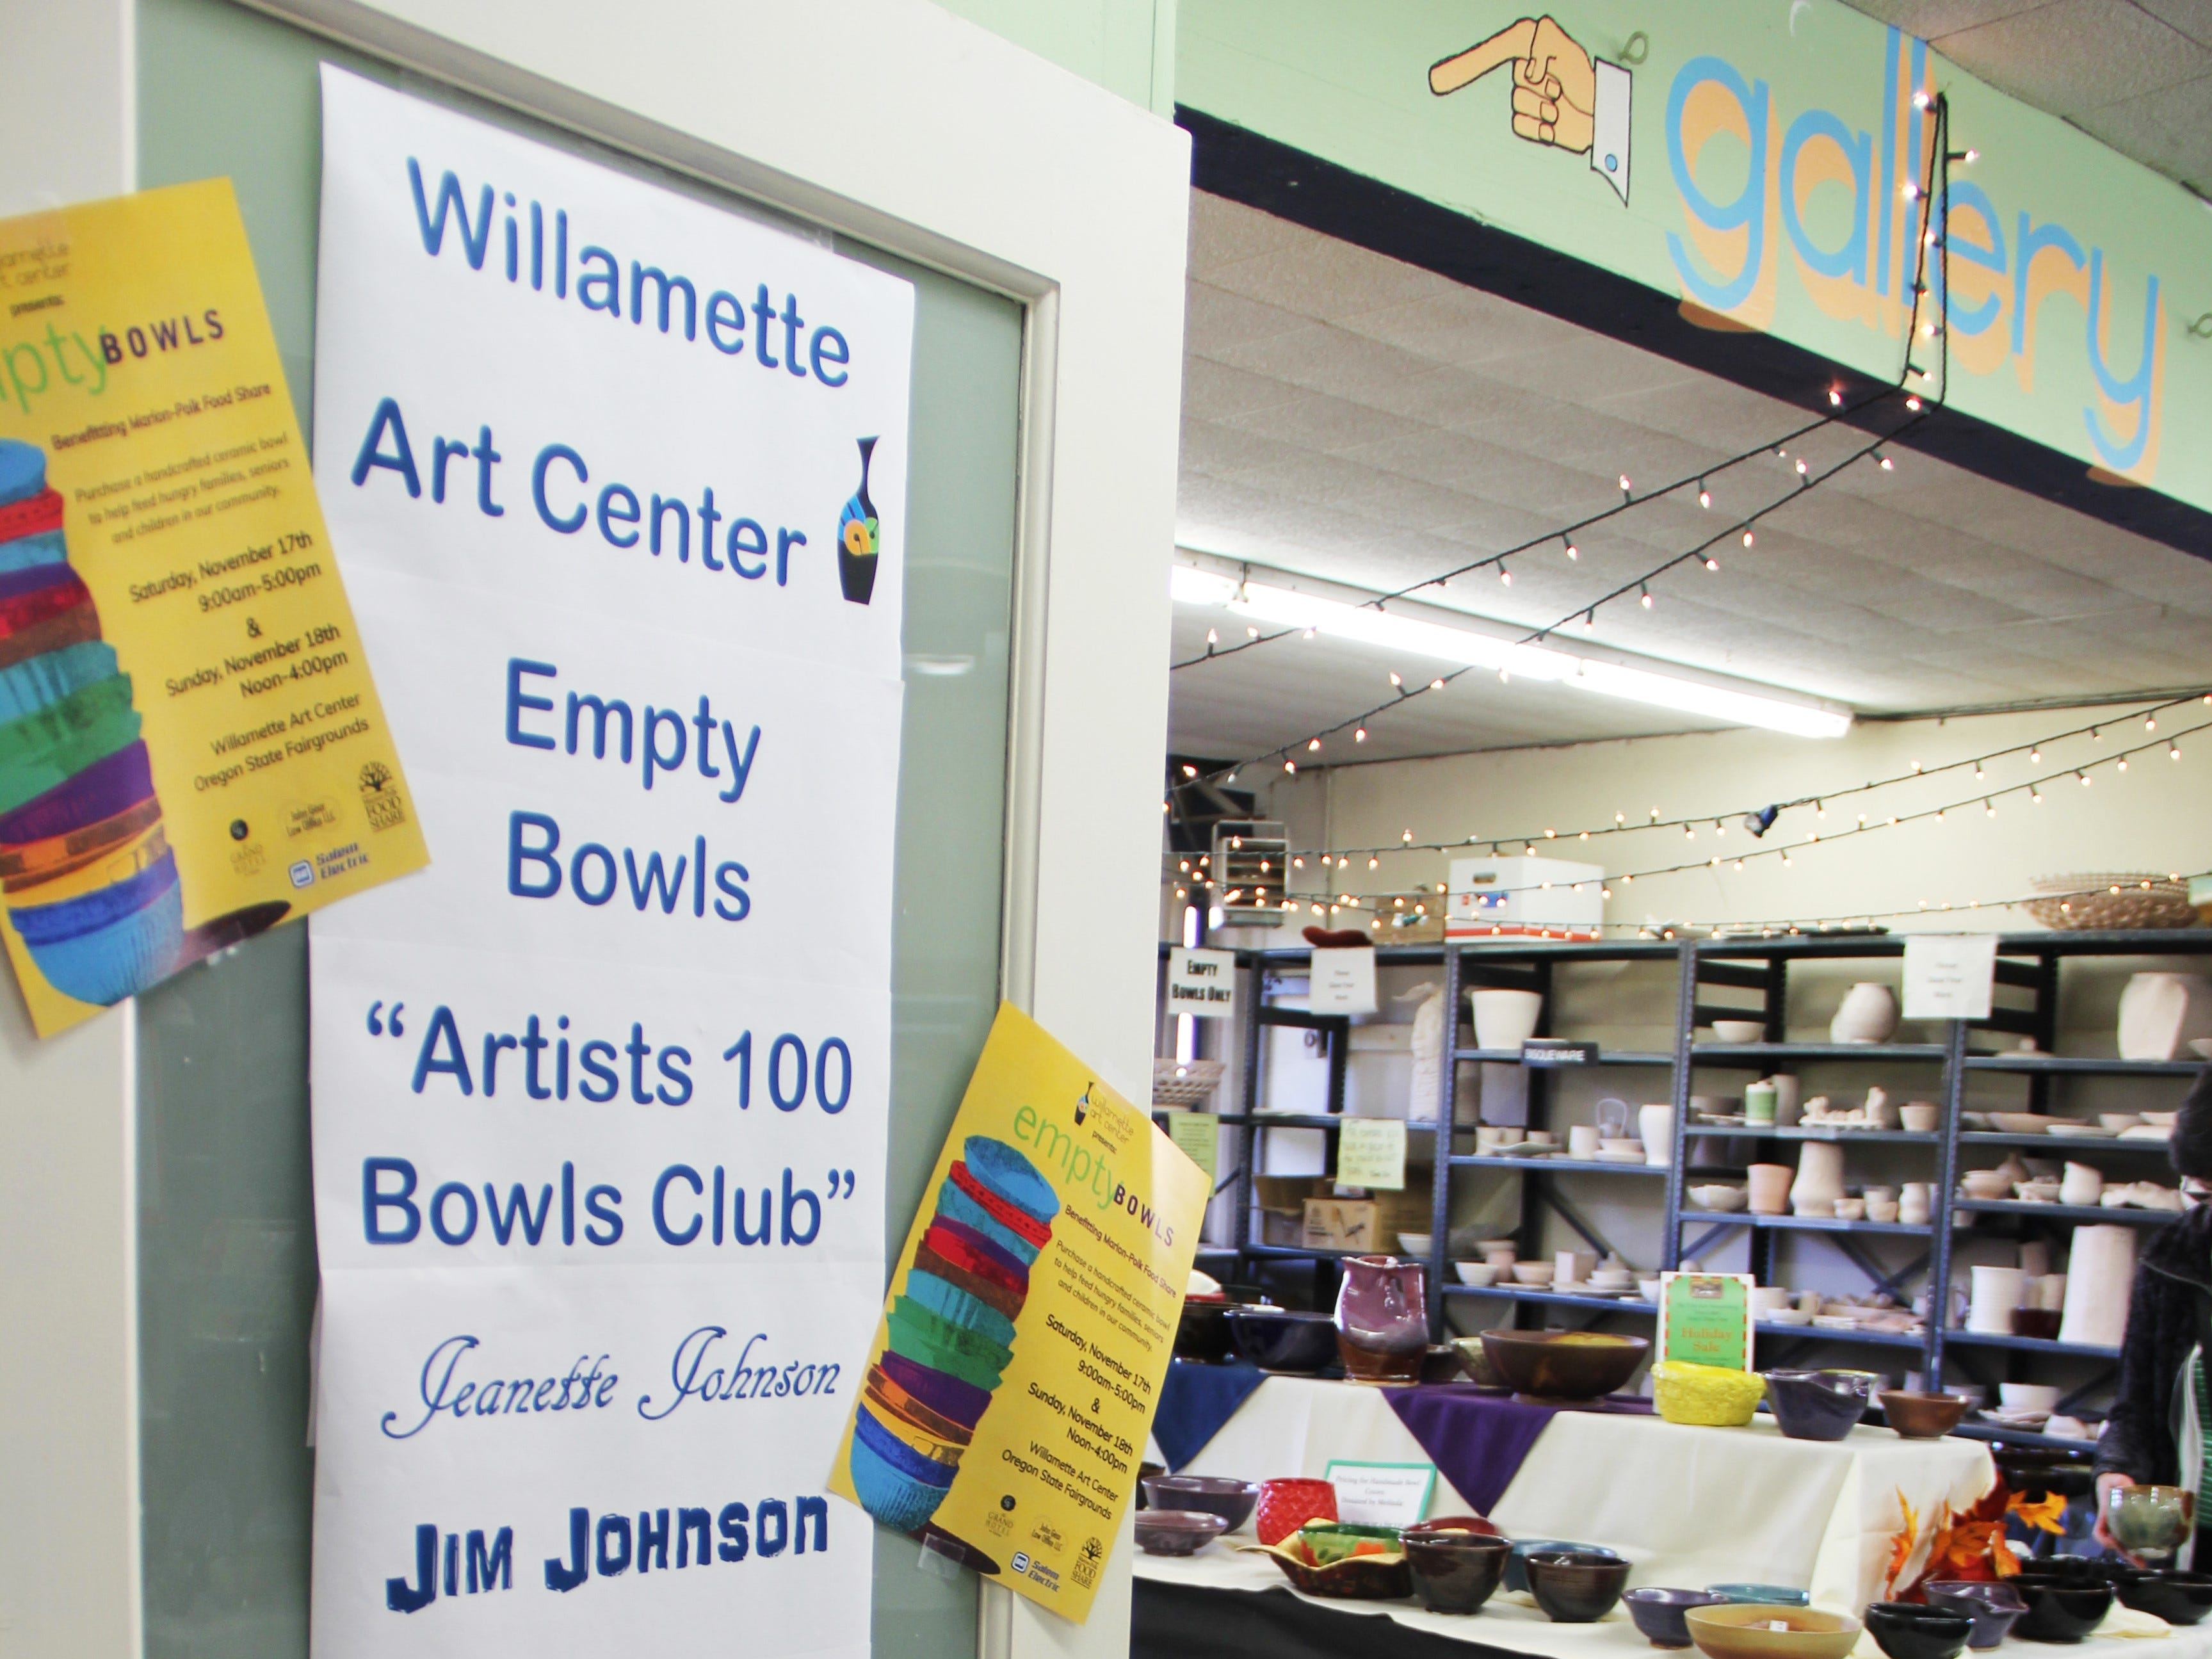 The names of the top 10 volunteers who created or glazed more than 100 bowls this year are highlighted on a poster at the Willamette Art Center's Empty Bowls fundraiser on Saturday, Nov. 17.